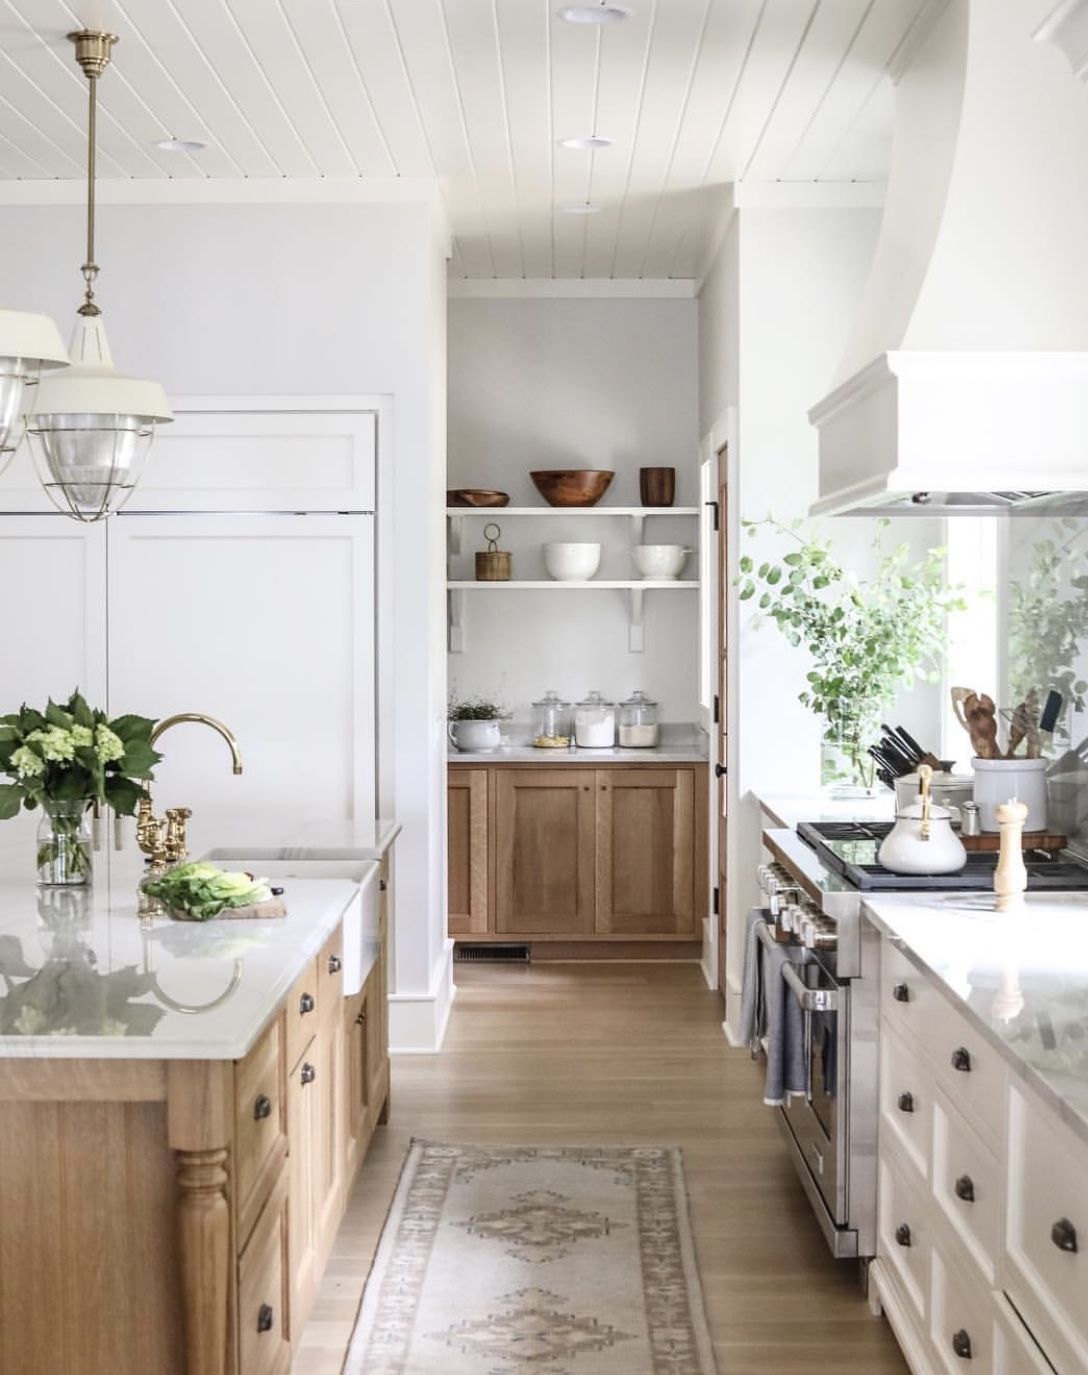 This Beautiful Oak Kitchen From Solid Wood Kitchen Cabinets Features Units Made Entirely From Solid Solid Wood Kitchen Cabinets Solid Wood Kitchens Oak Kitchen